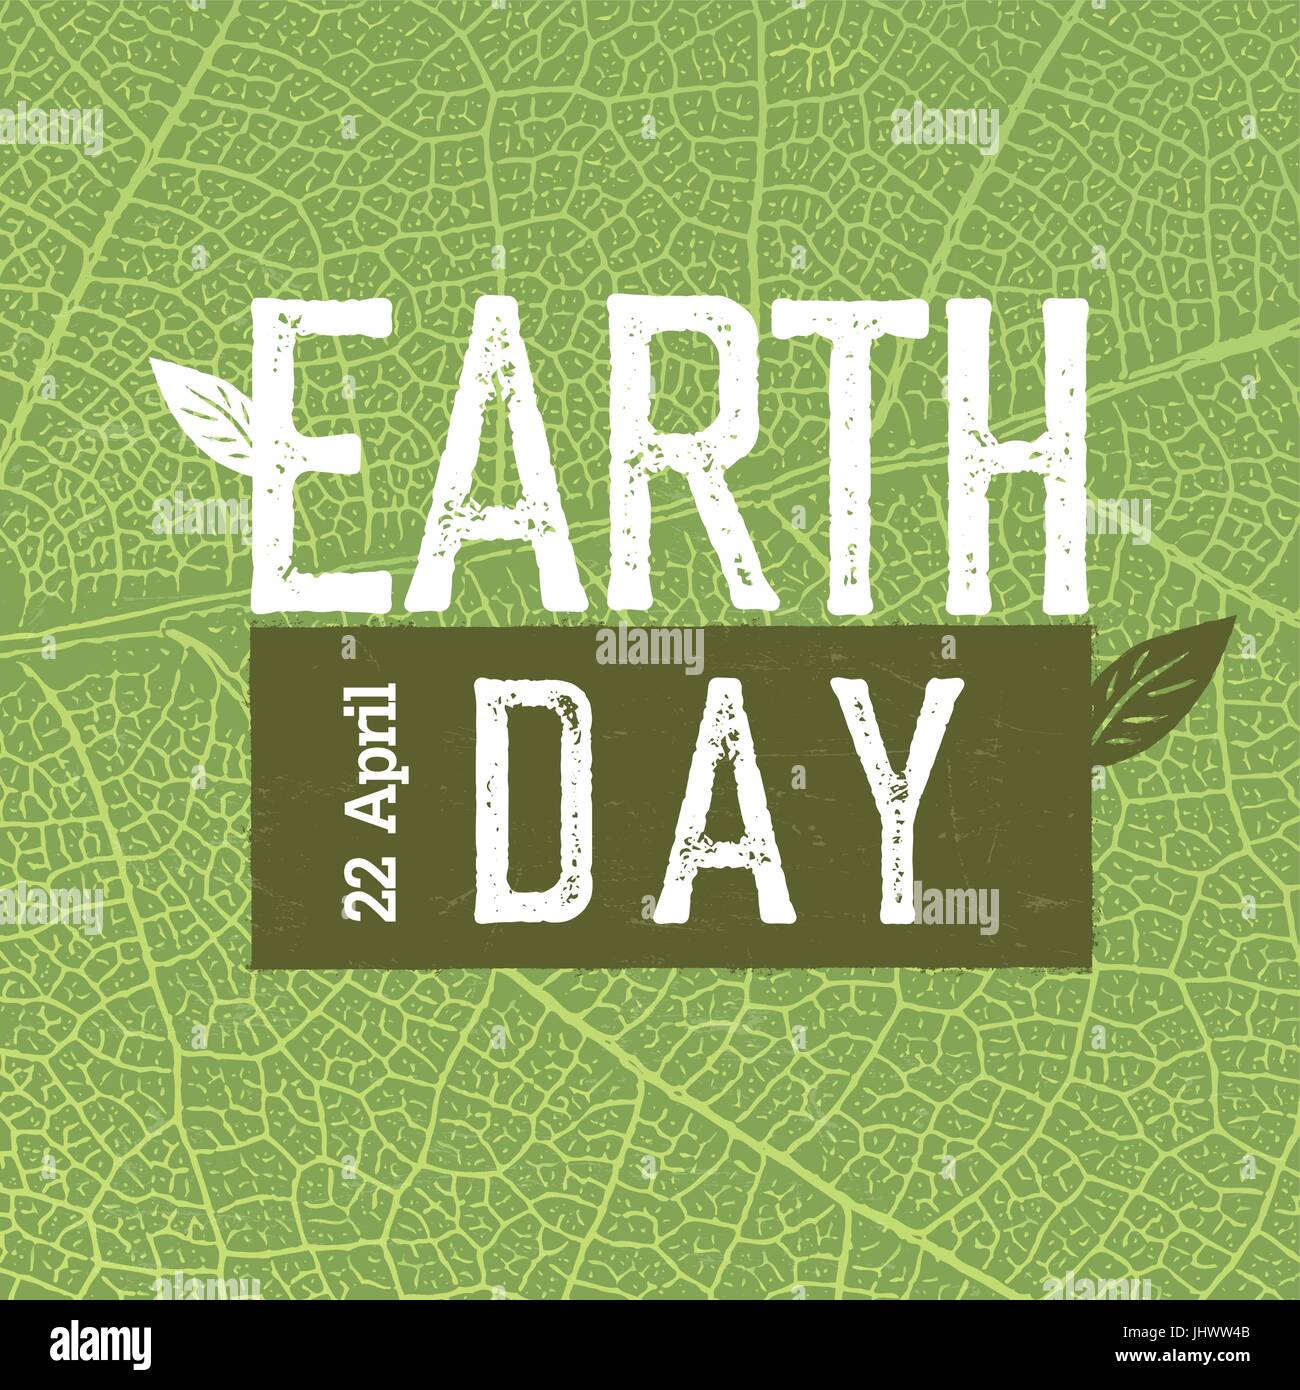 Grunge Earth Day Logo On Green Leaf Veins Texture Earth Day 22